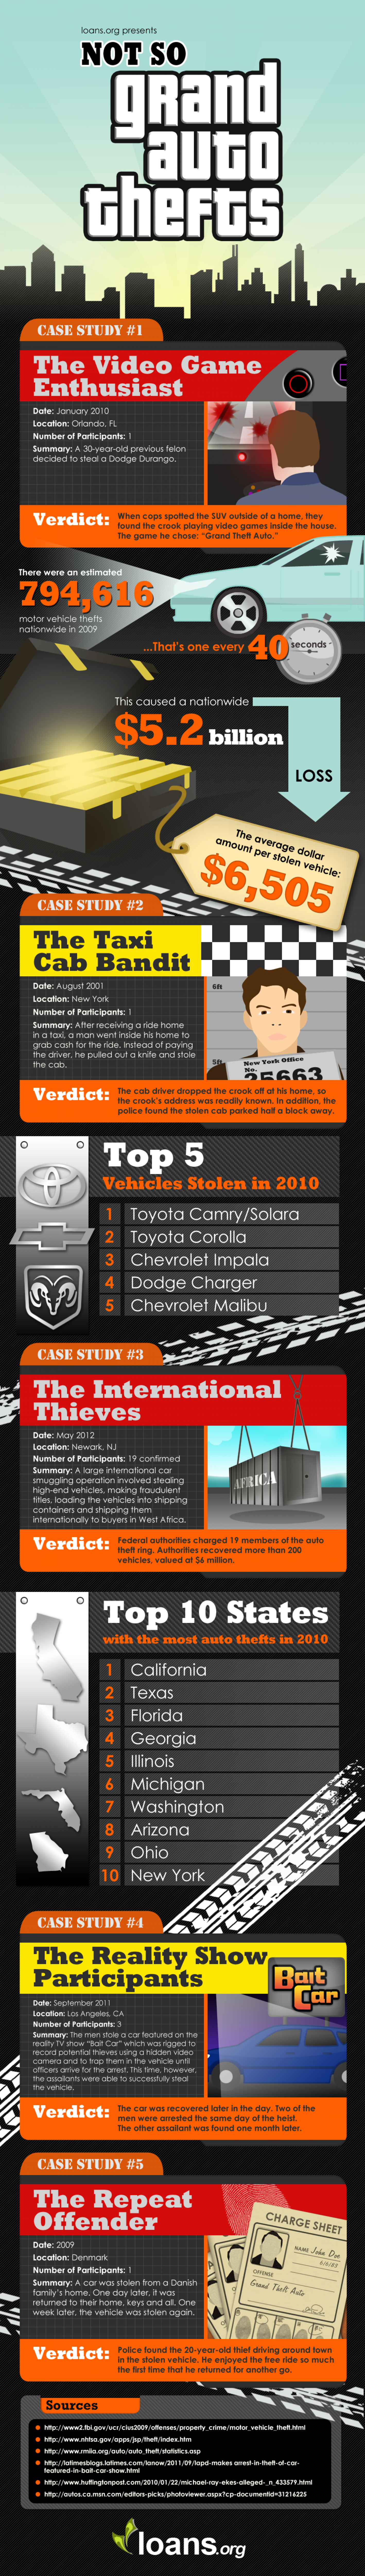 Not So Grand Auto Thefts Infographic